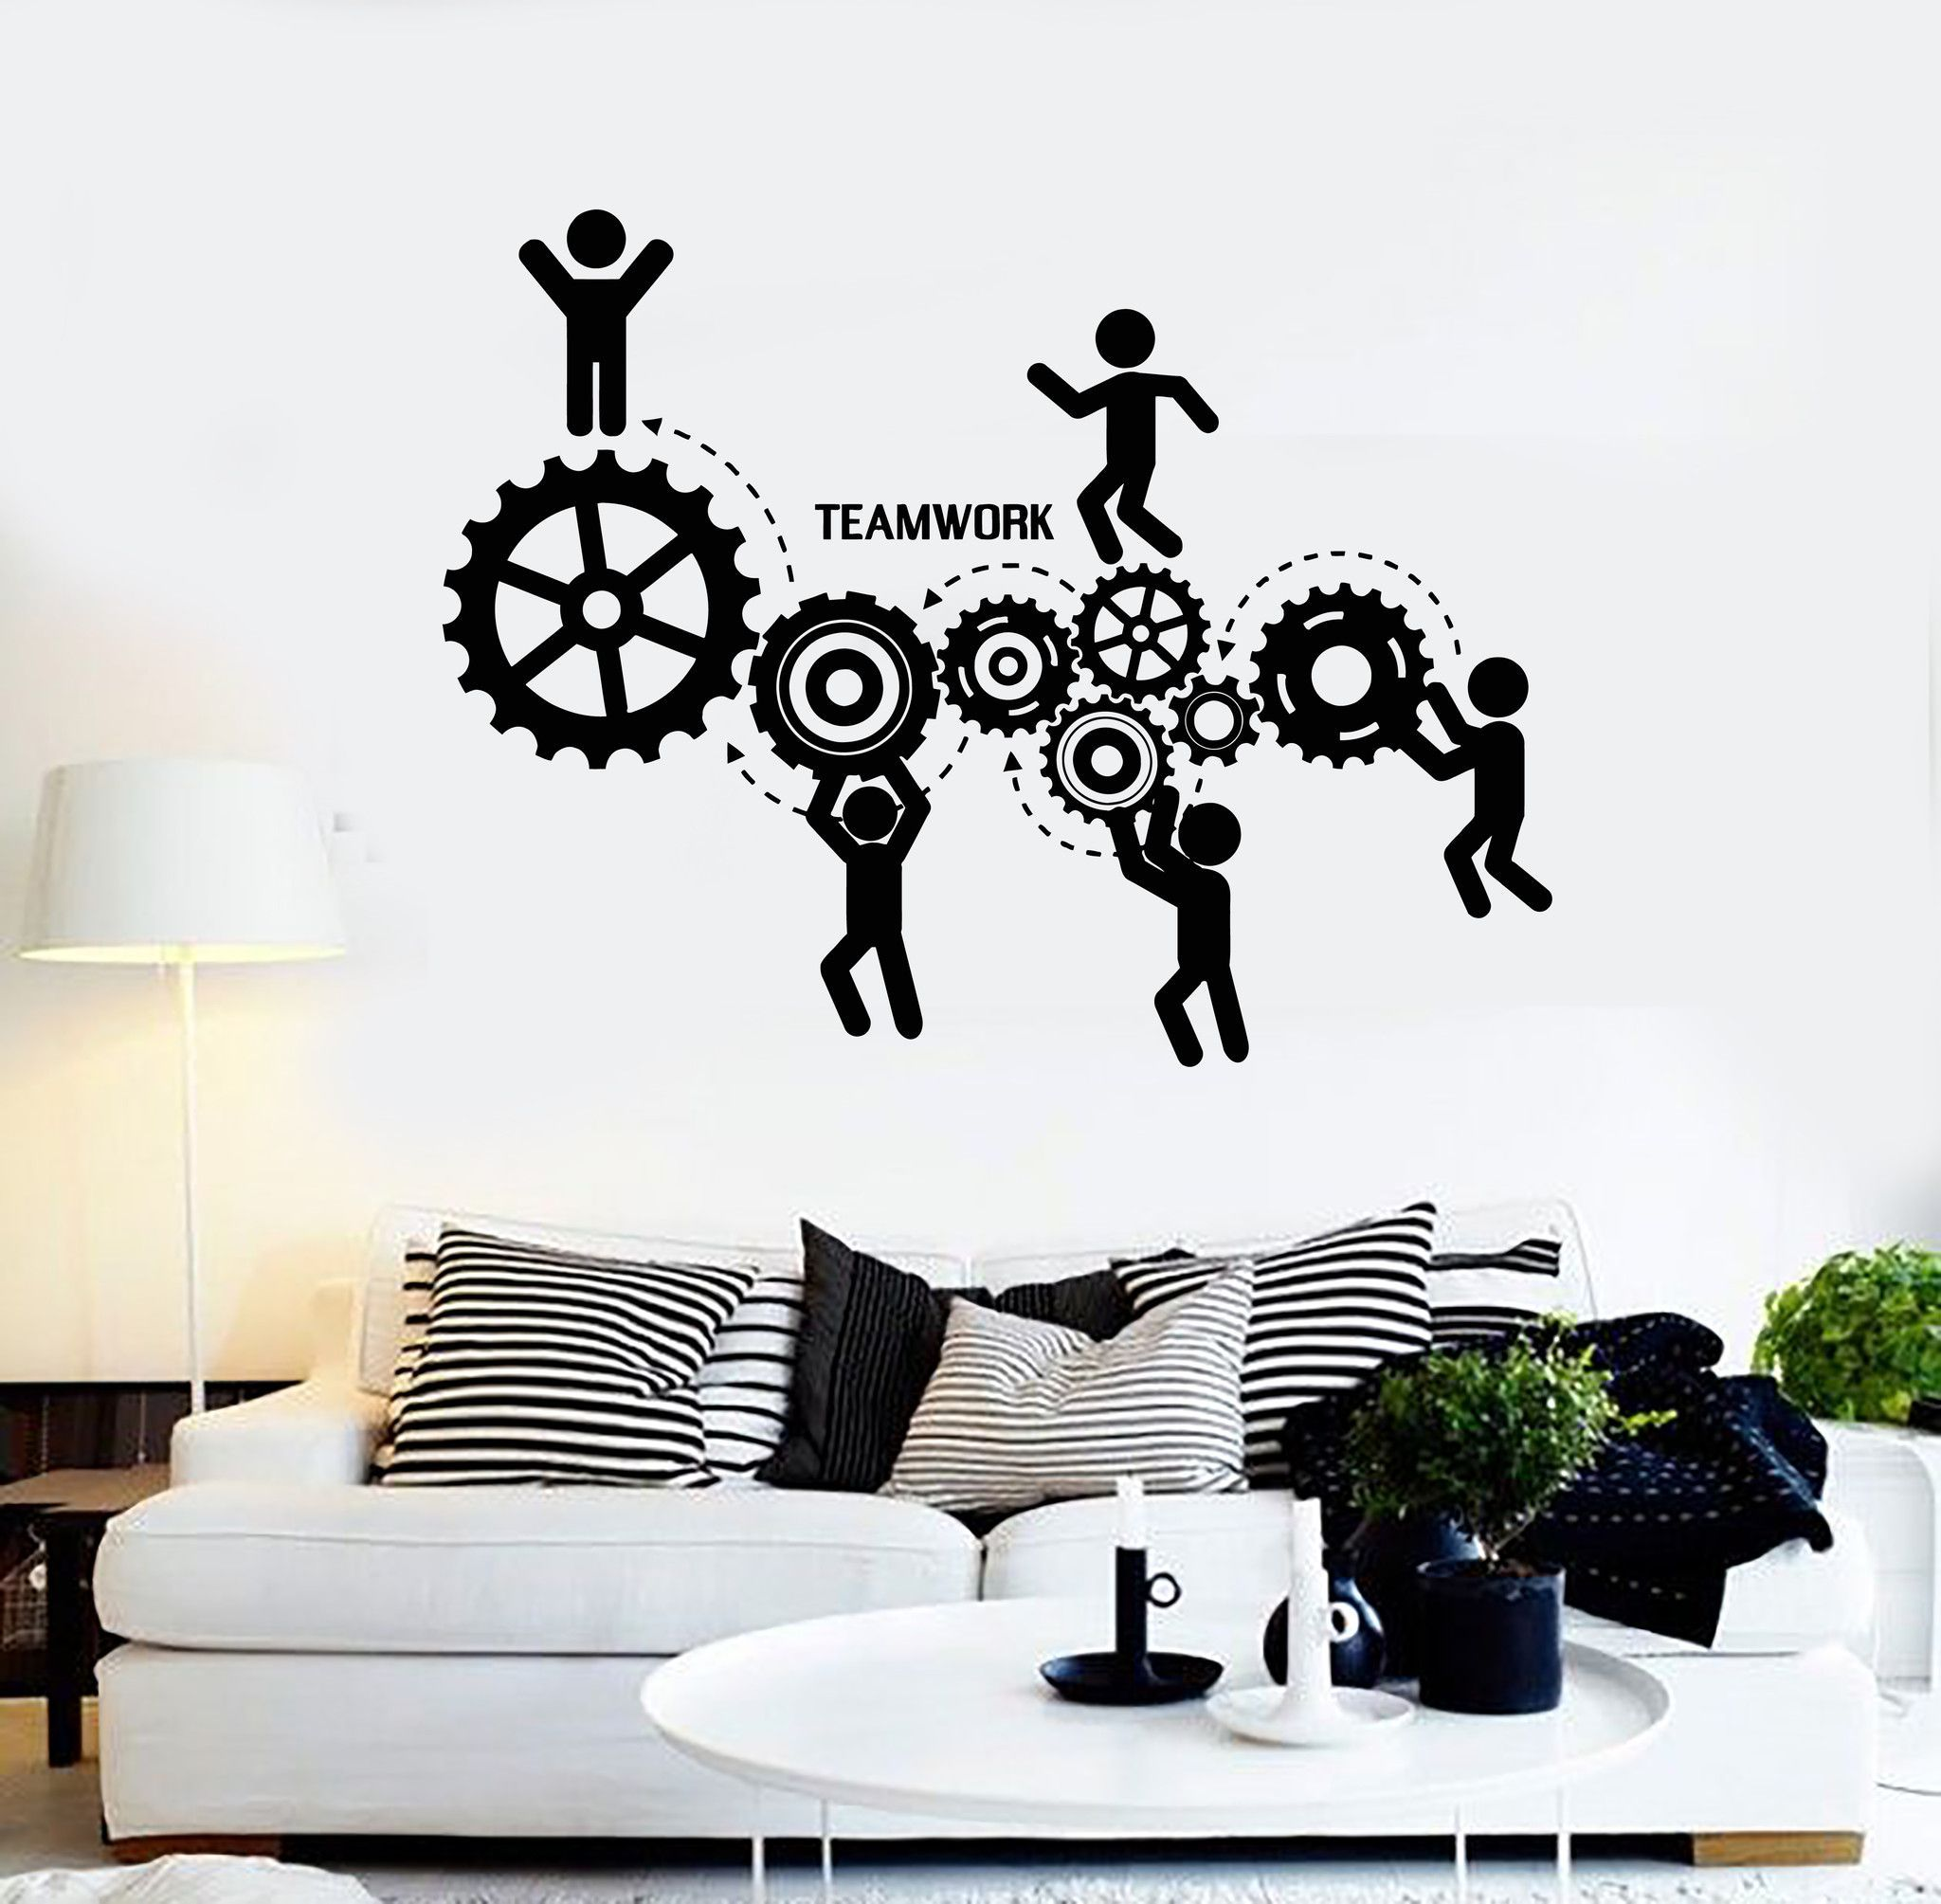 vinyl wall decal teamwork office motivation worker on wall stickers id=76137